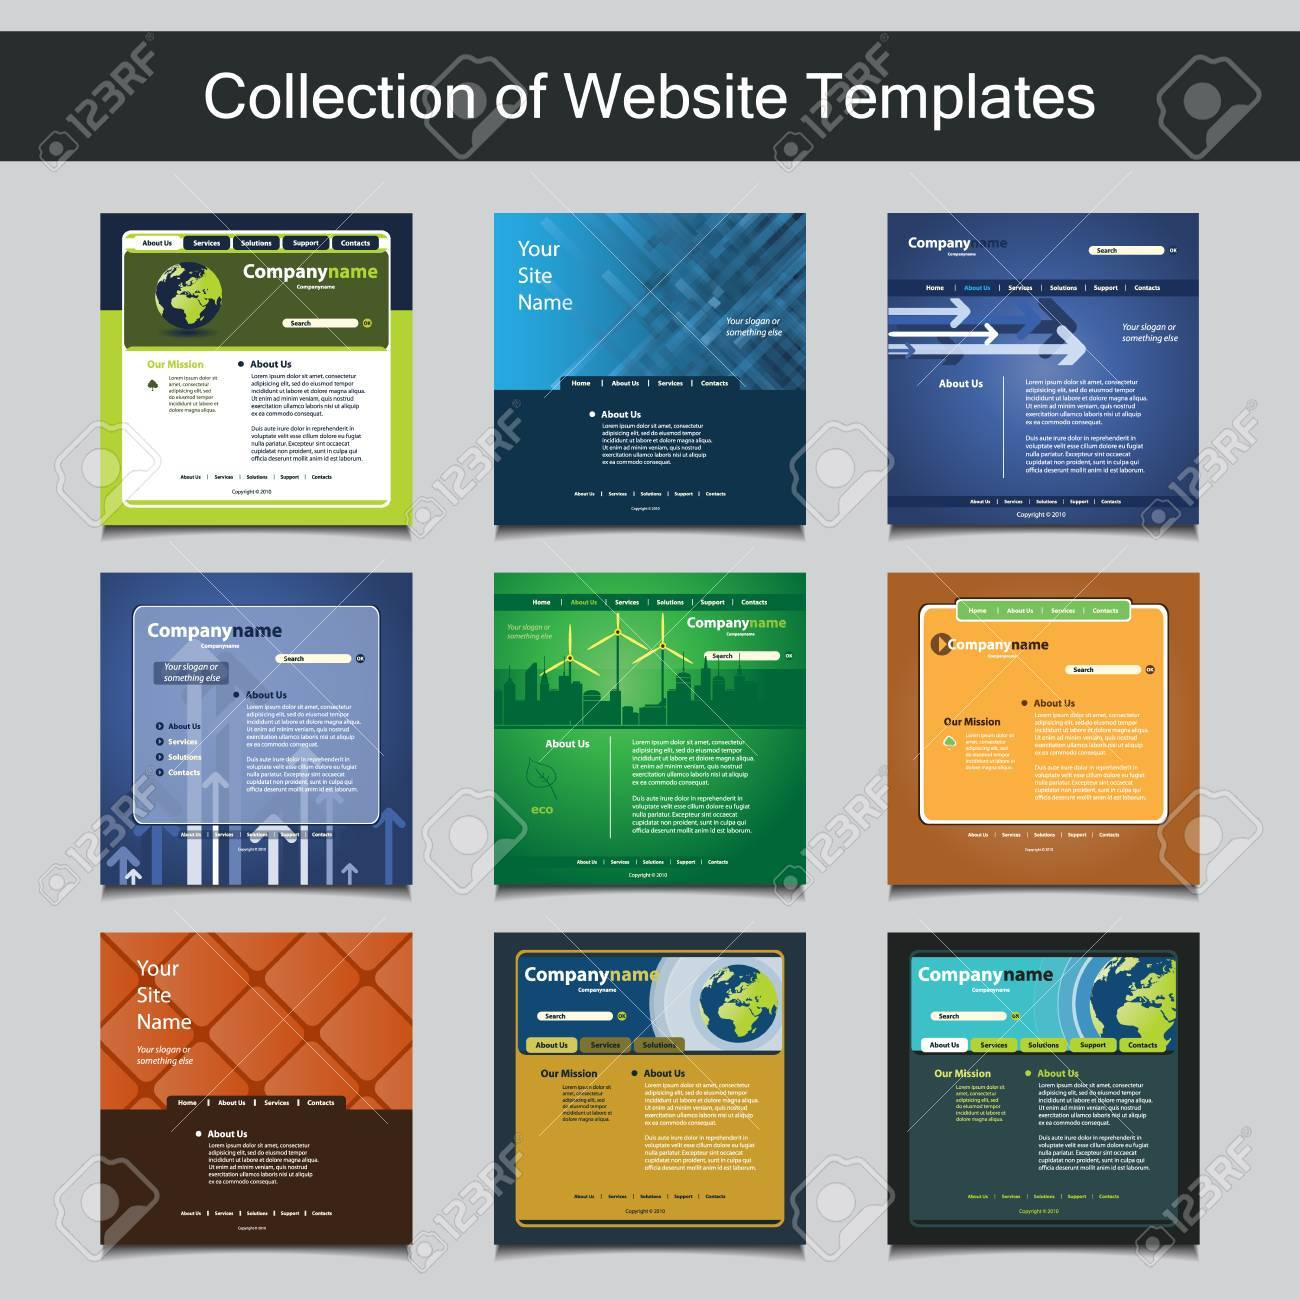 Collection Of Website Templates For Your Business - Nine Nice ...